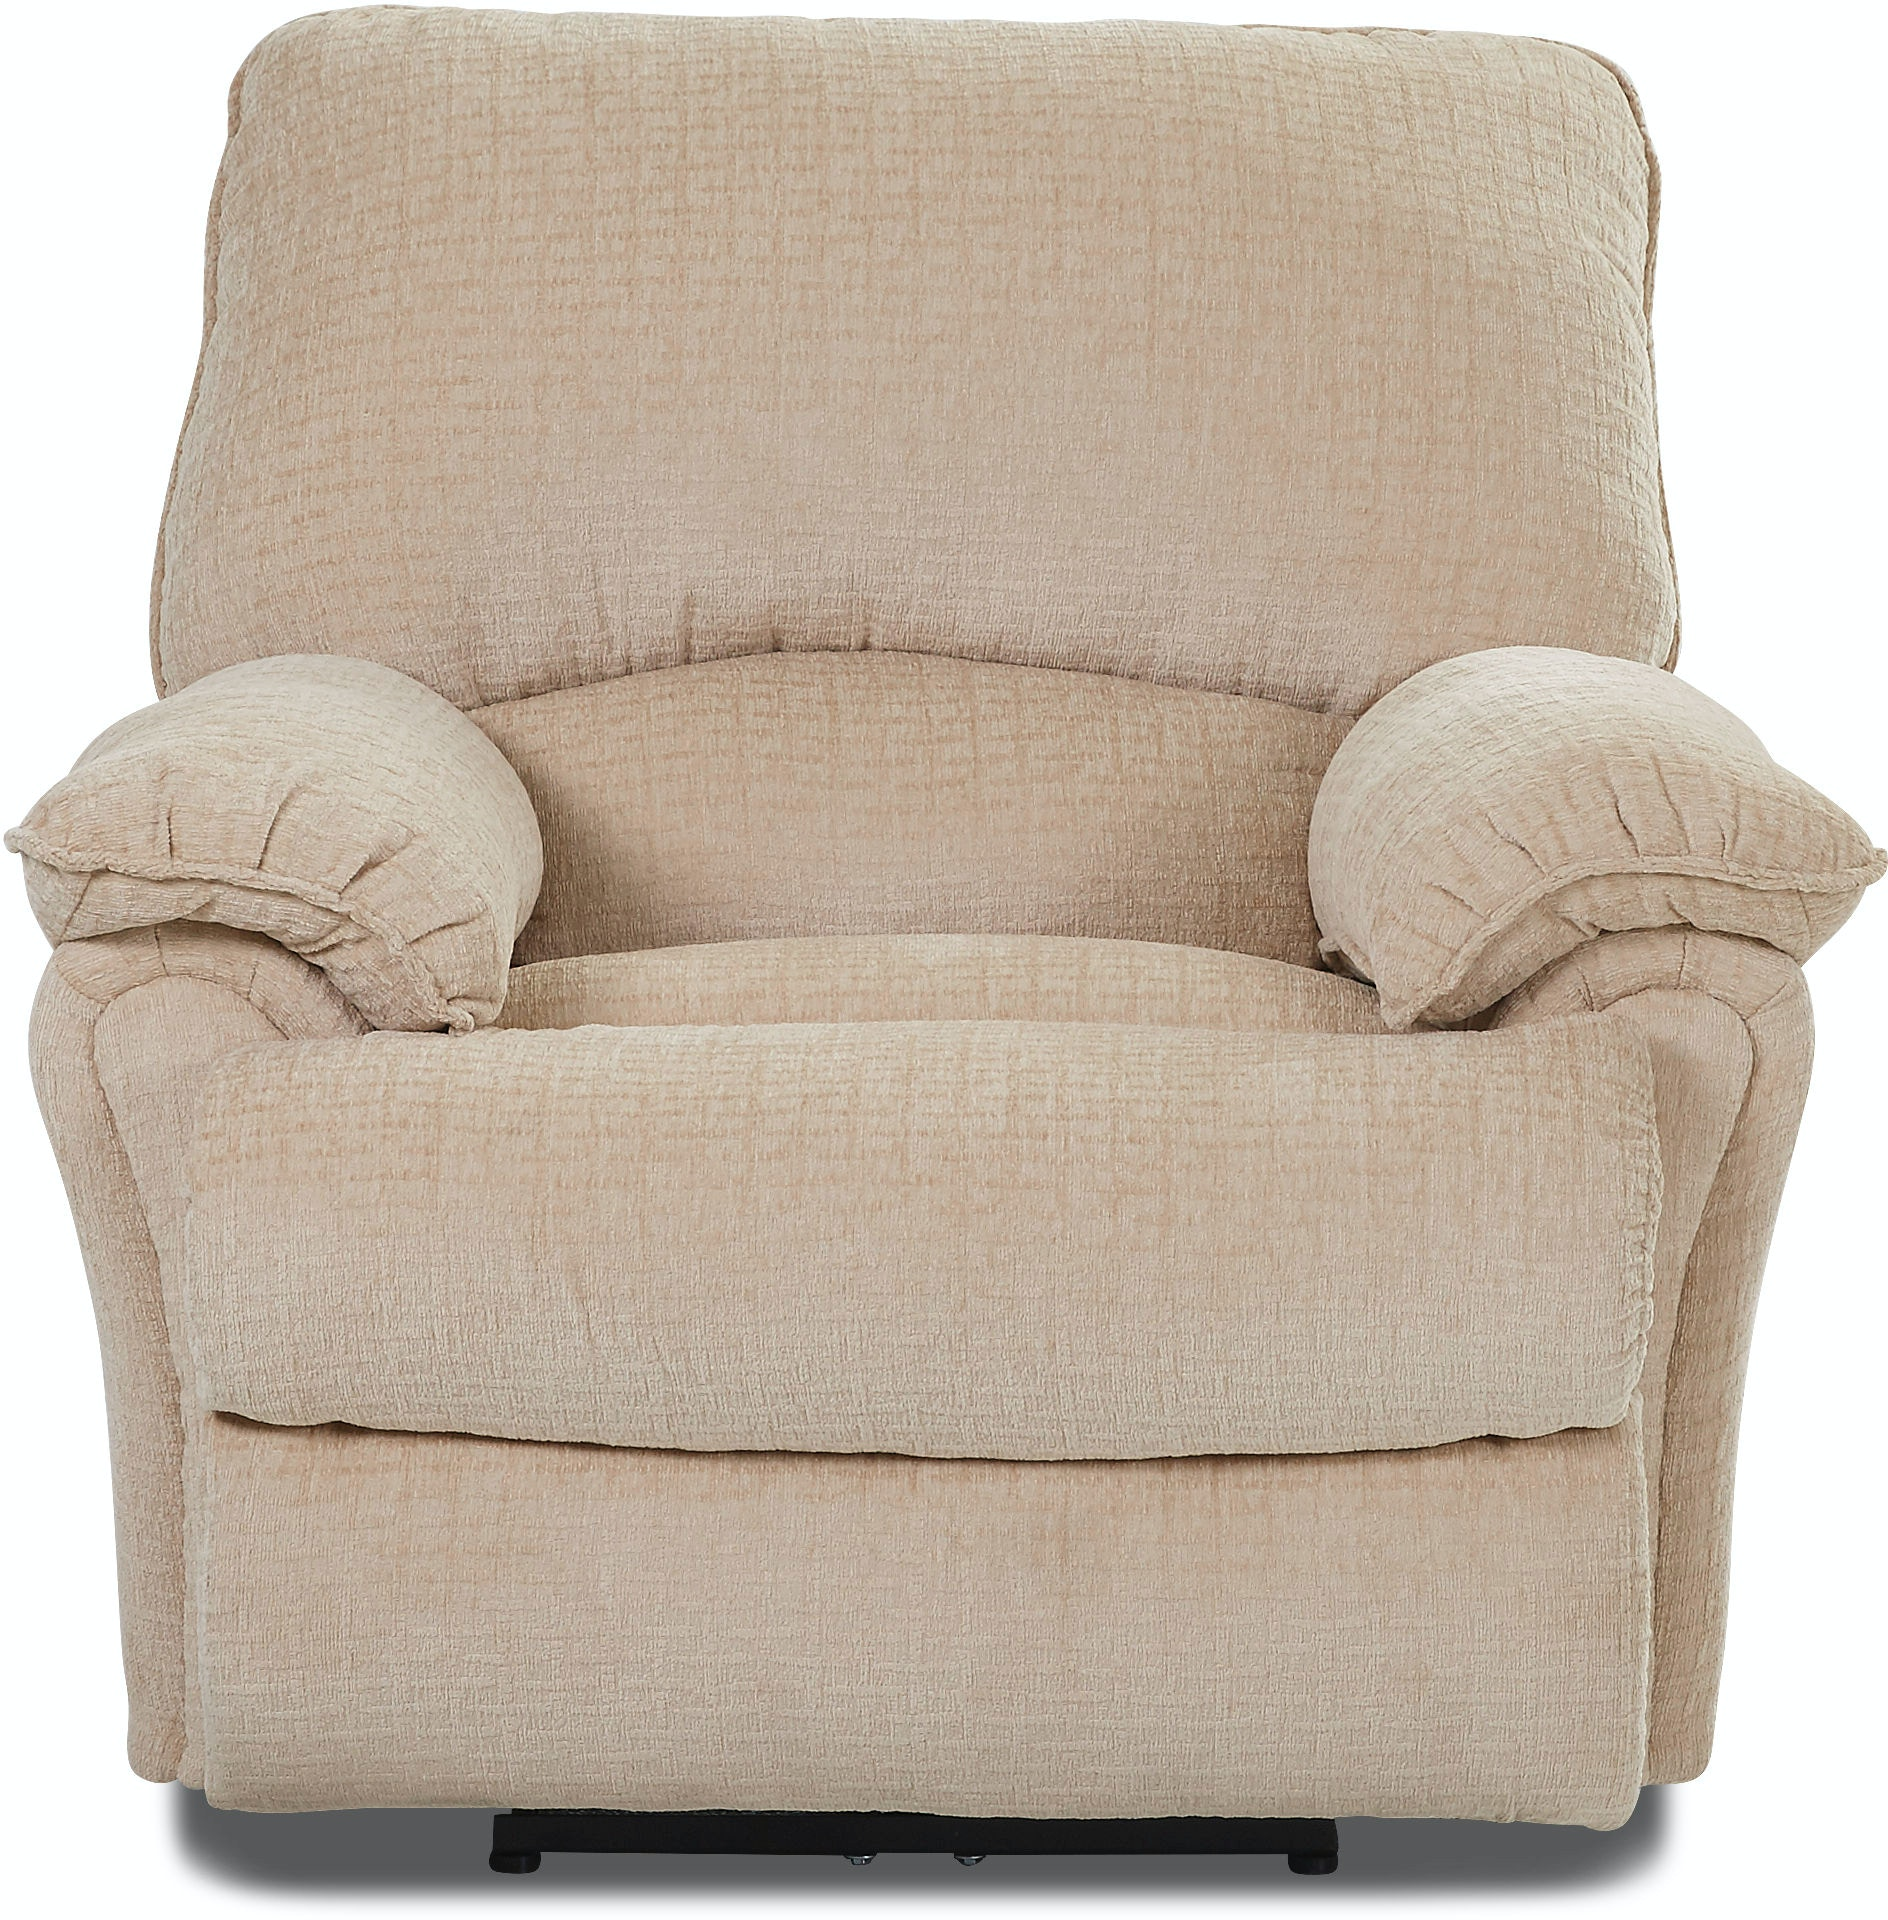 40503 Rcklaussner Reclining Chair Karl S